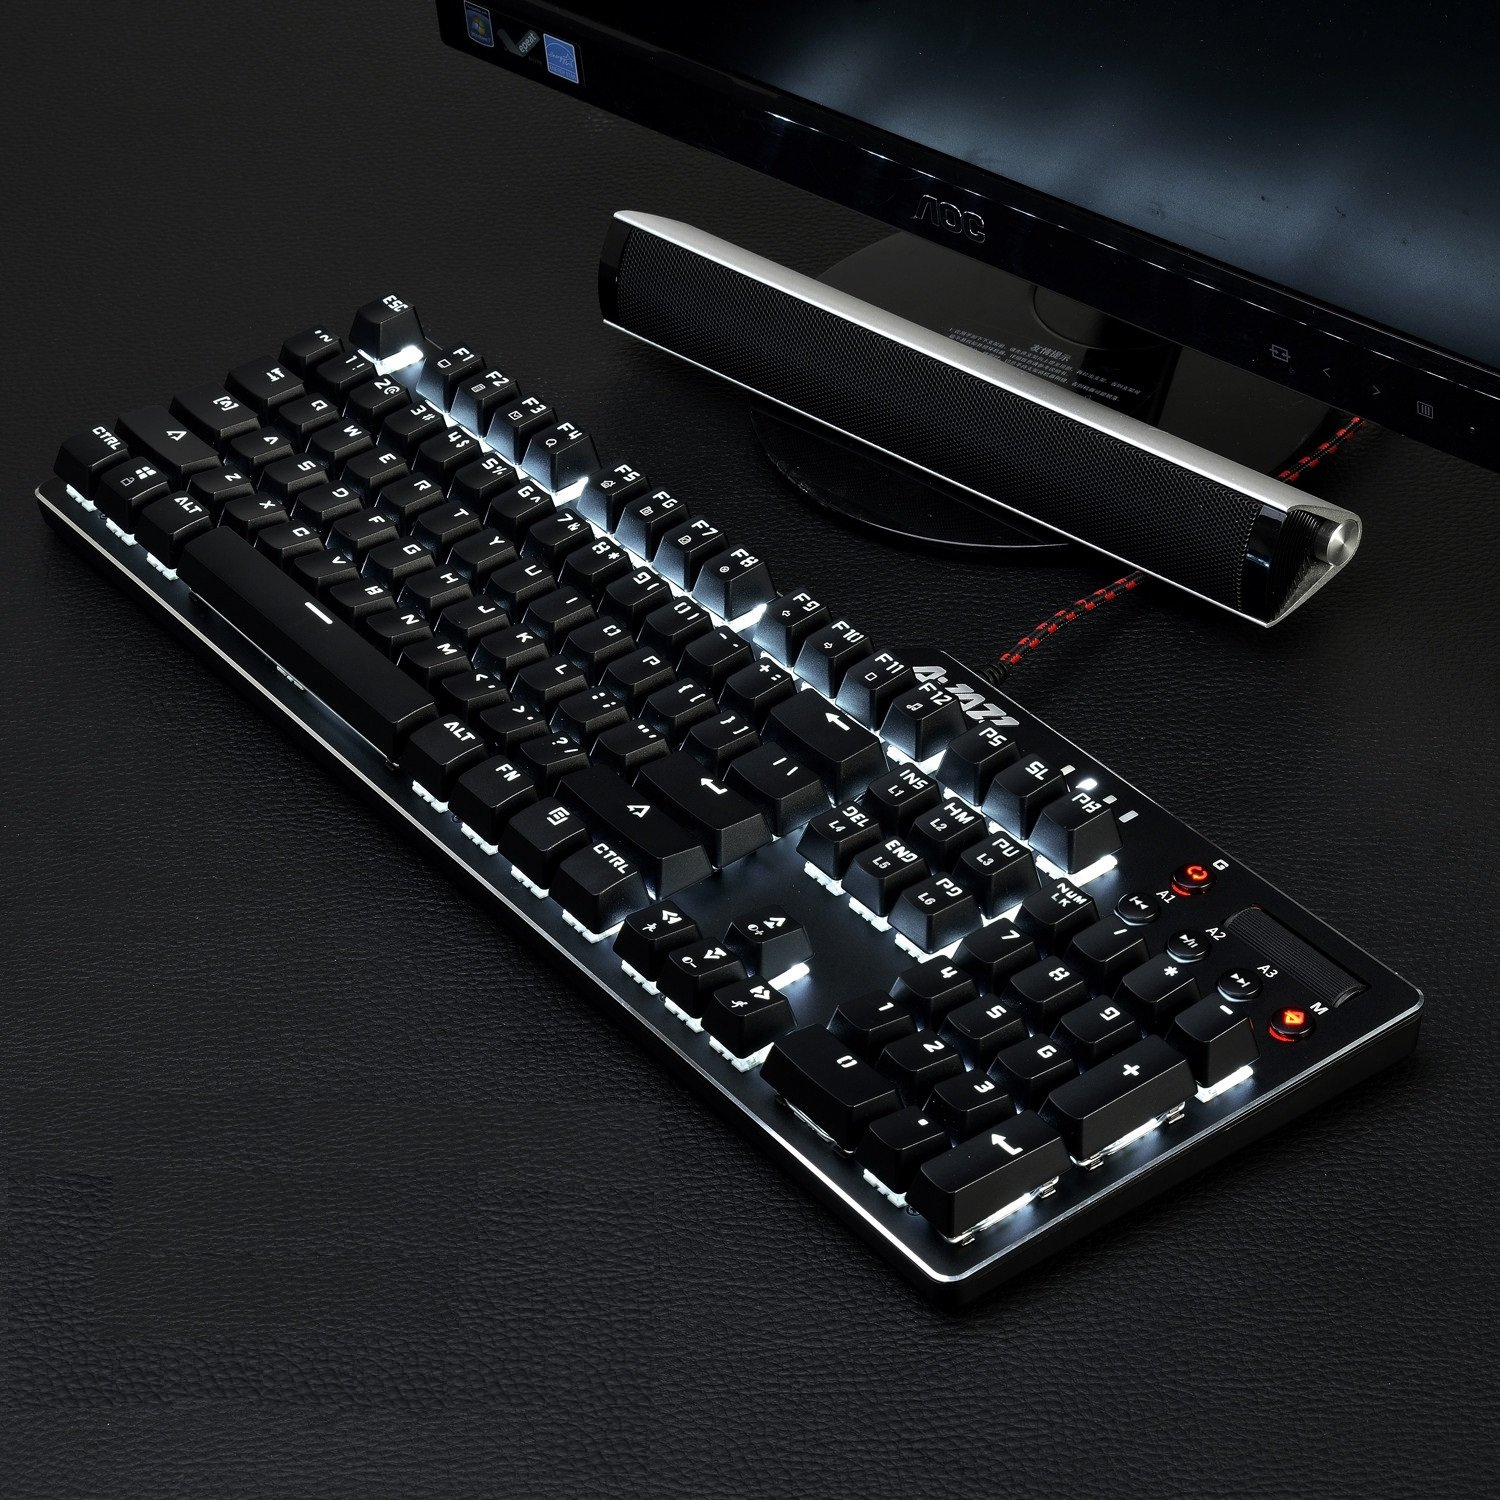 Ajazz AK35I Wired Mechanical Keyboard with Red Switches, White LED Backlit, Multimedia Keys Roller, Anti-ghosting Professional Gaming Keyboard, Black by FIRSTBLOOD ONLY GAME.